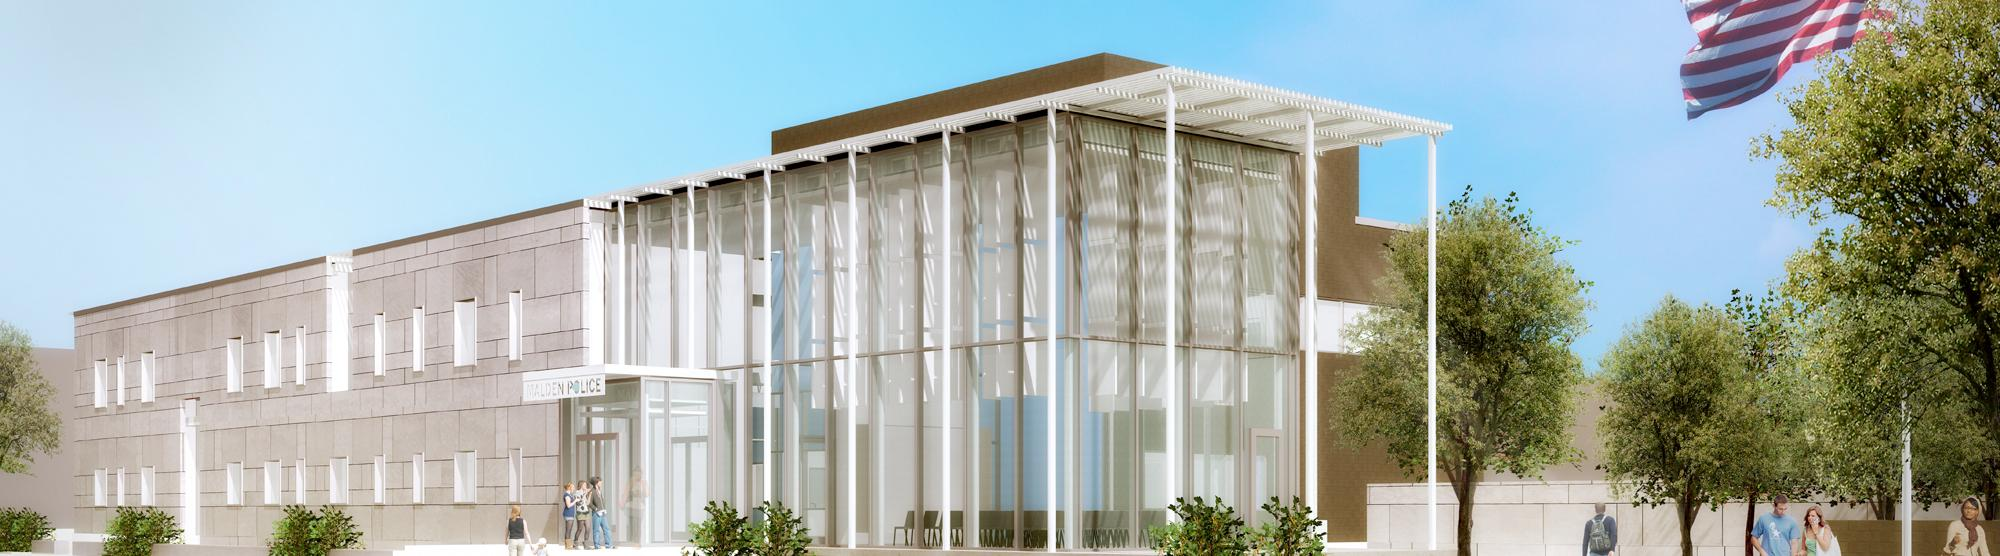 Rendering of New Malden Police Headquarters